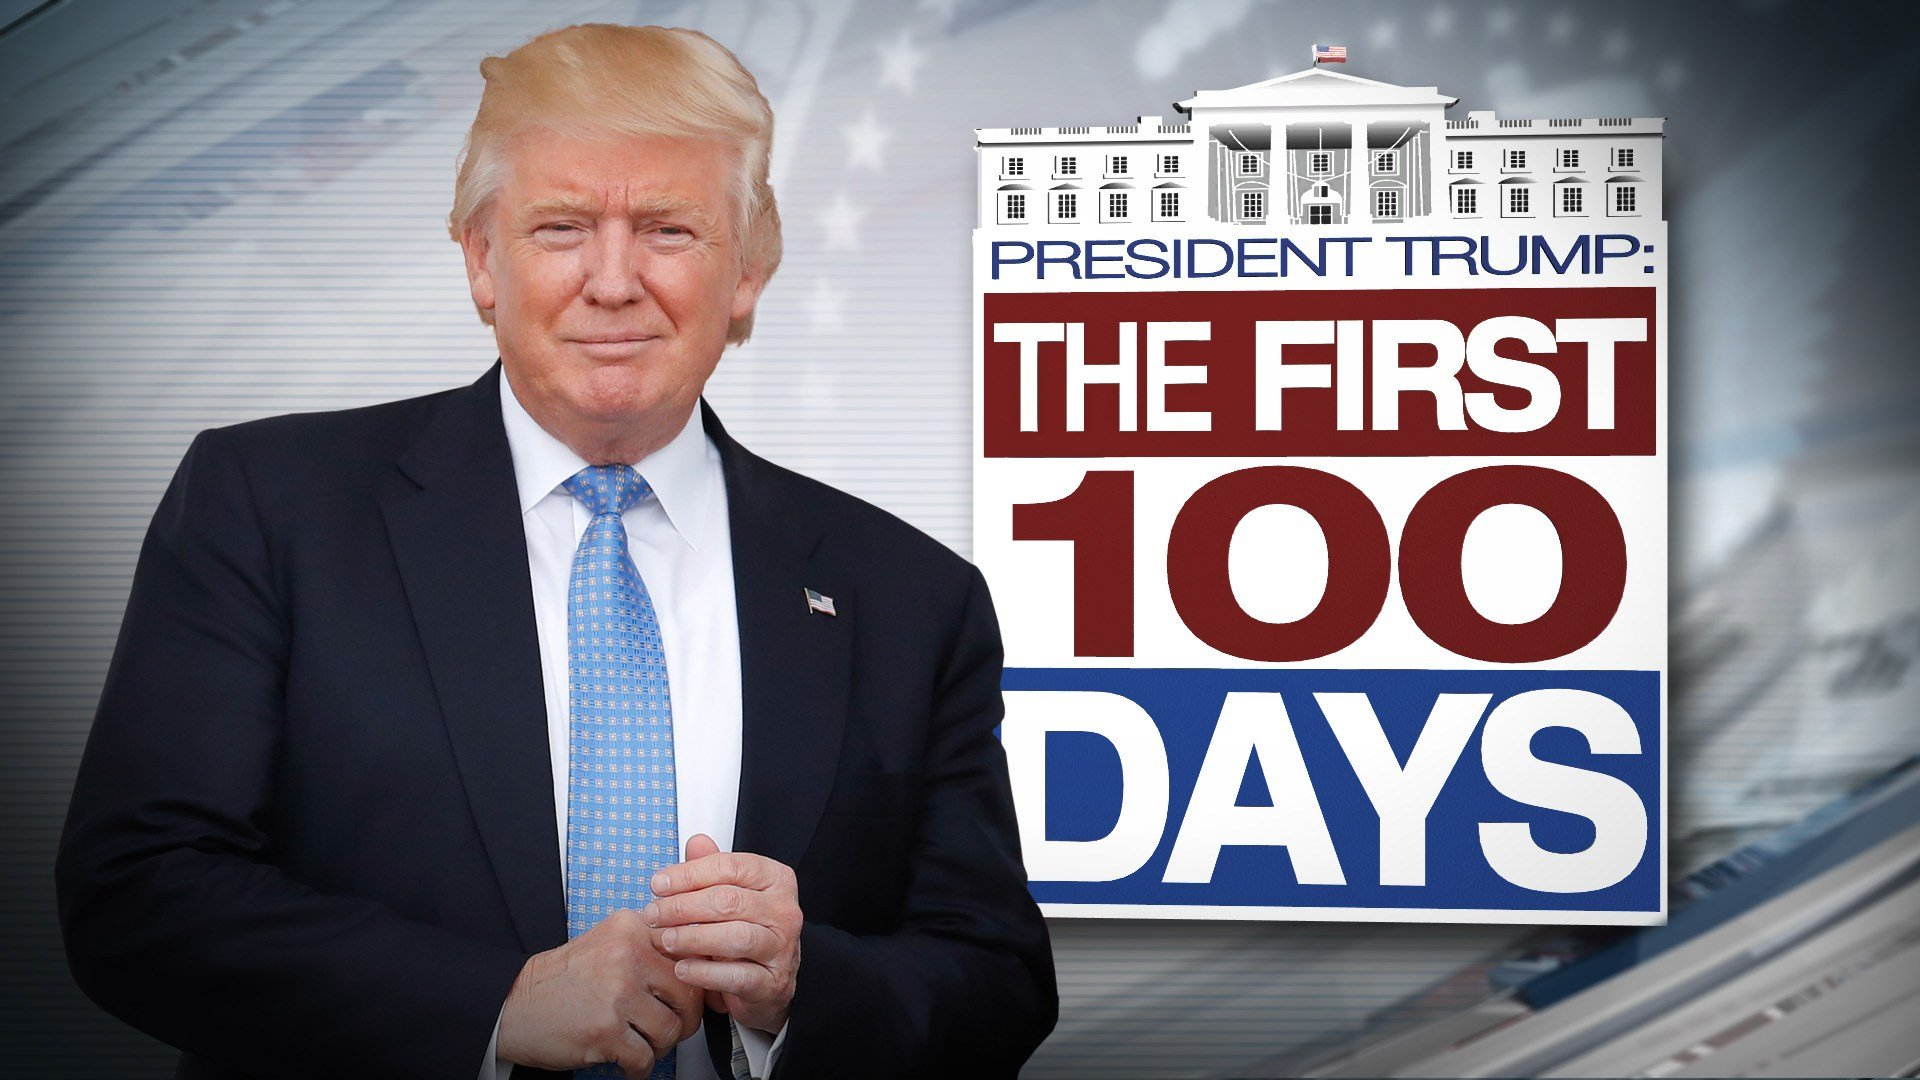 As President Donald Trump settles into the White House, the world waits to see how he'll spend his first 100 days in office. (KCTV5)